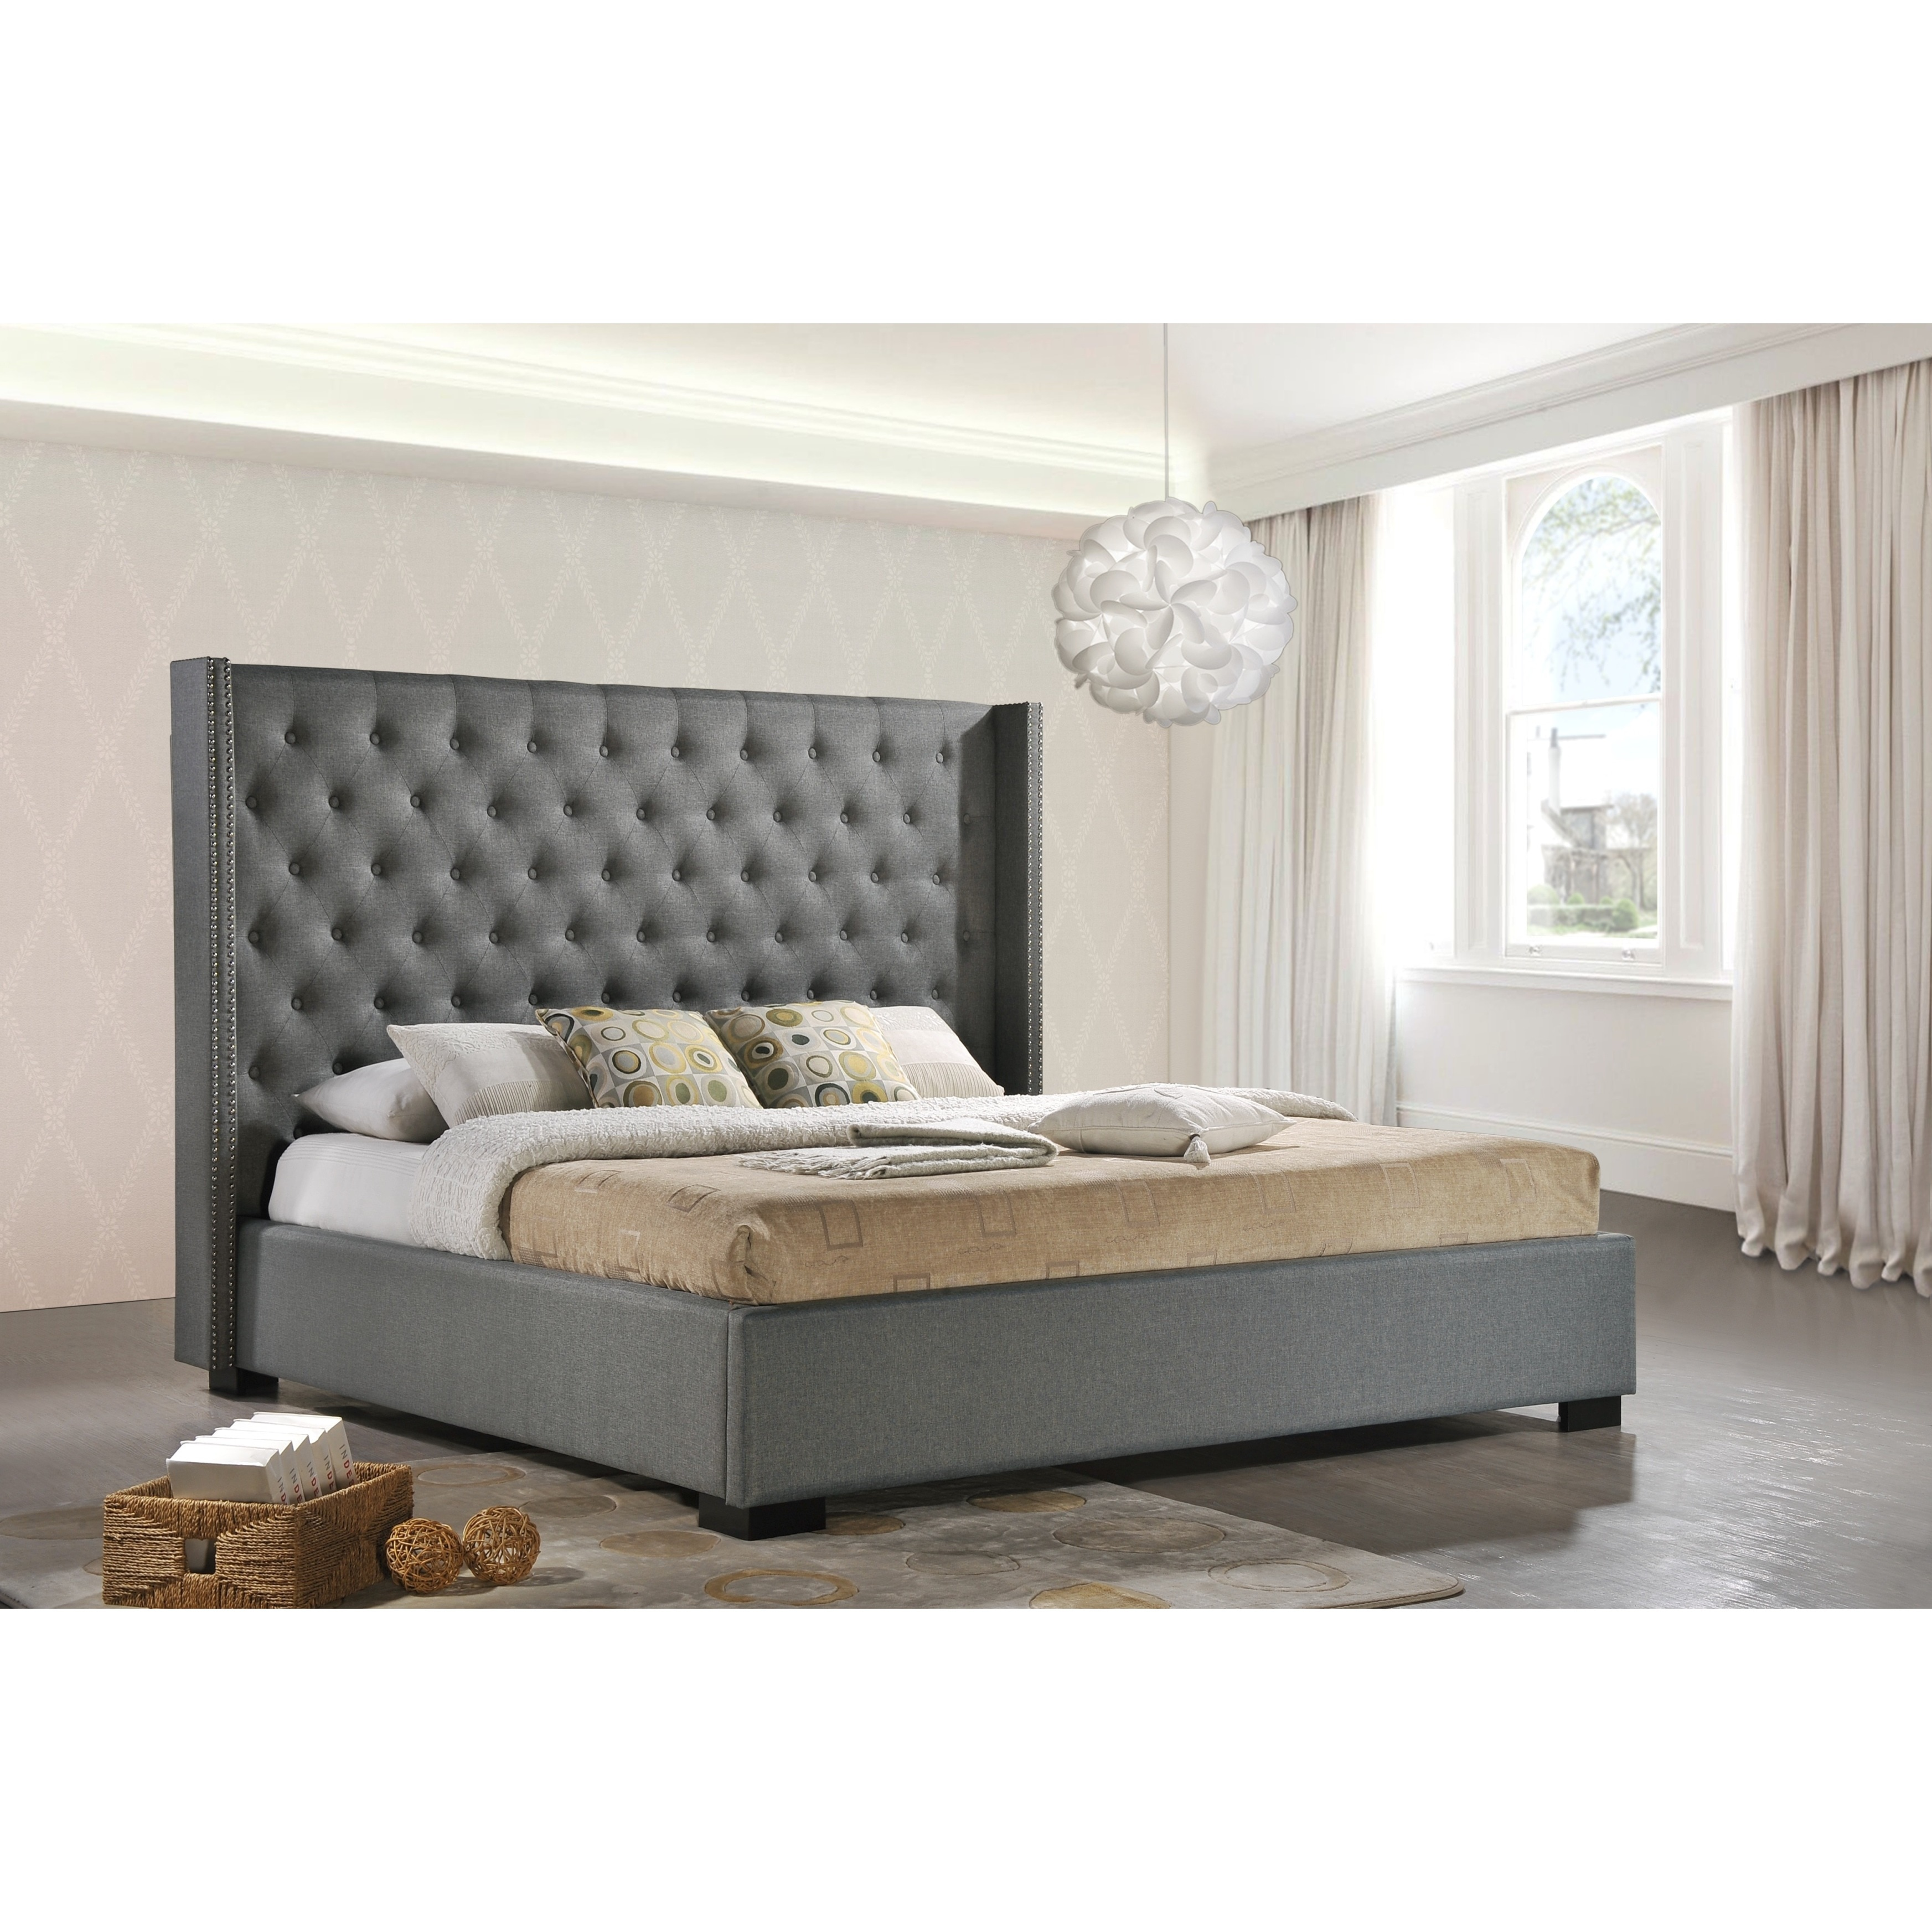 Newport King Size Wingback Tufted Upholstered Contemporary Bed In Gray Fabric Walmart Com Walmart Com